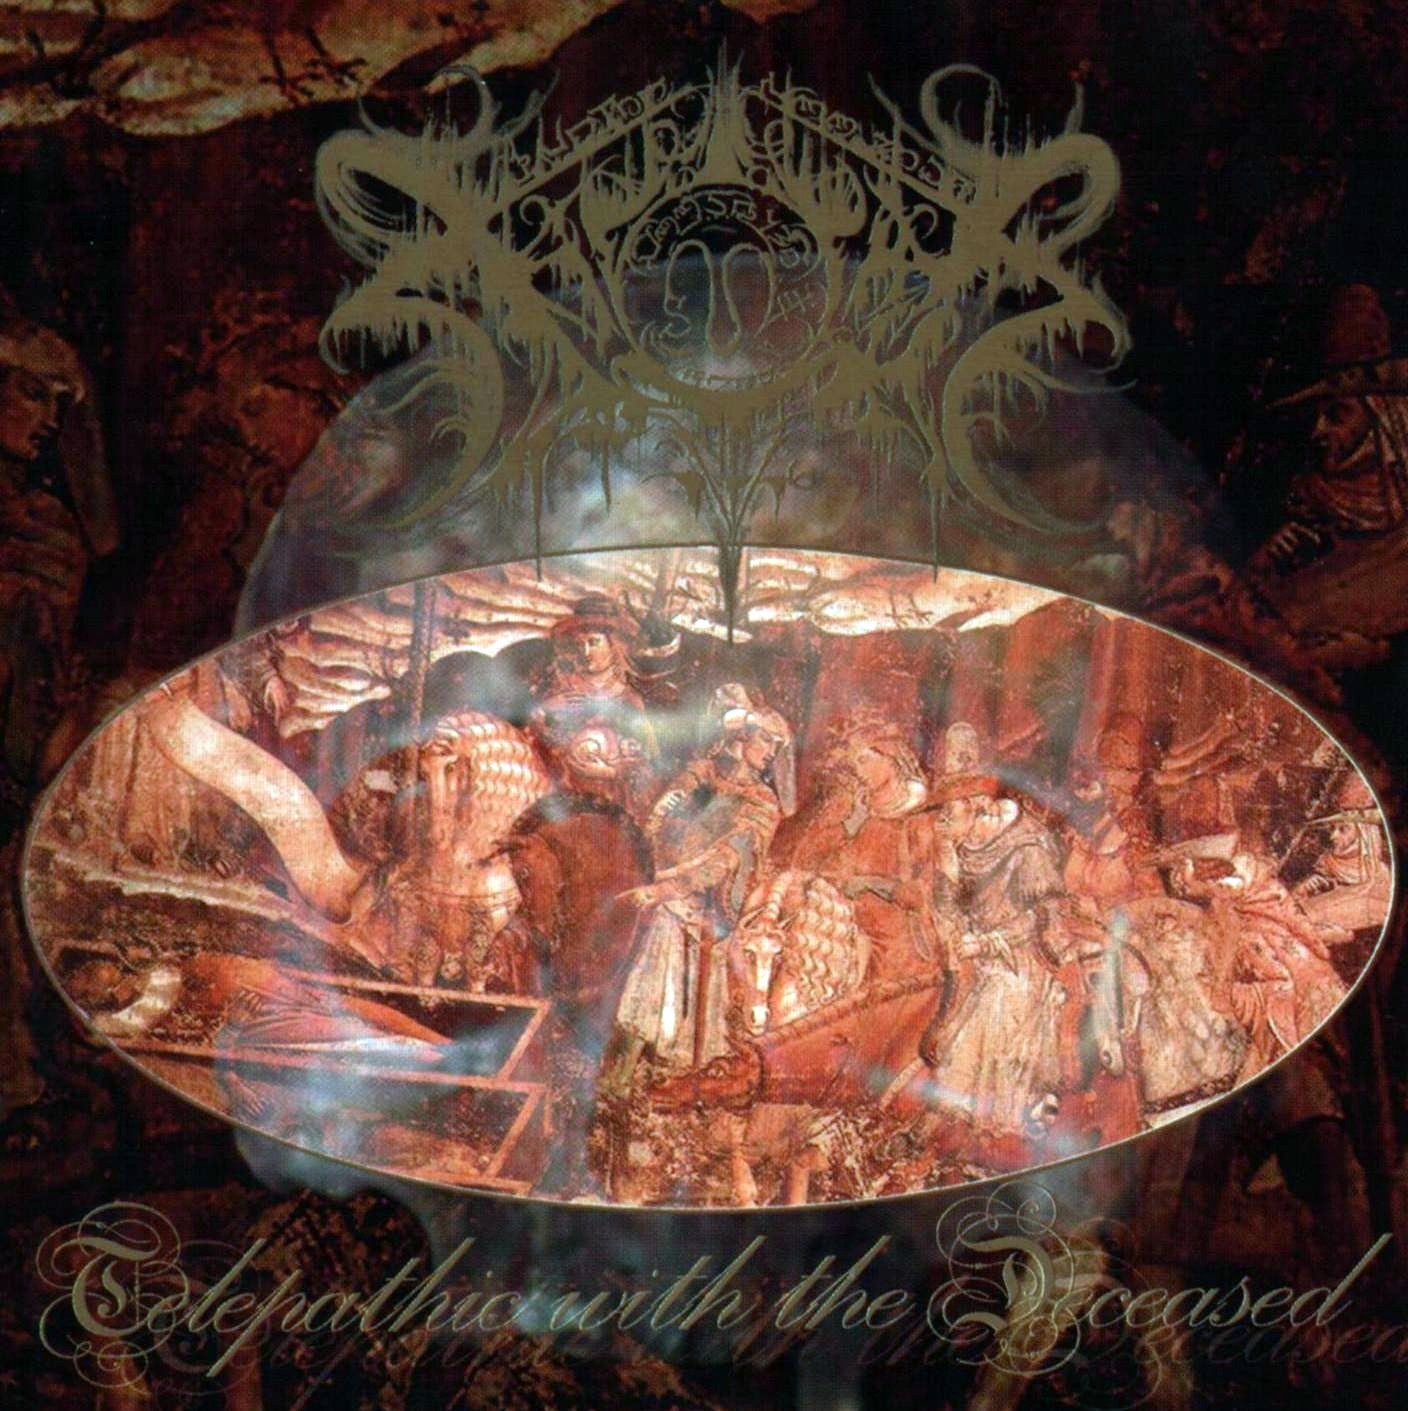 Xasthur - Telepathic With The Deceased  2004 Xasthur Telepathic With The Deceased